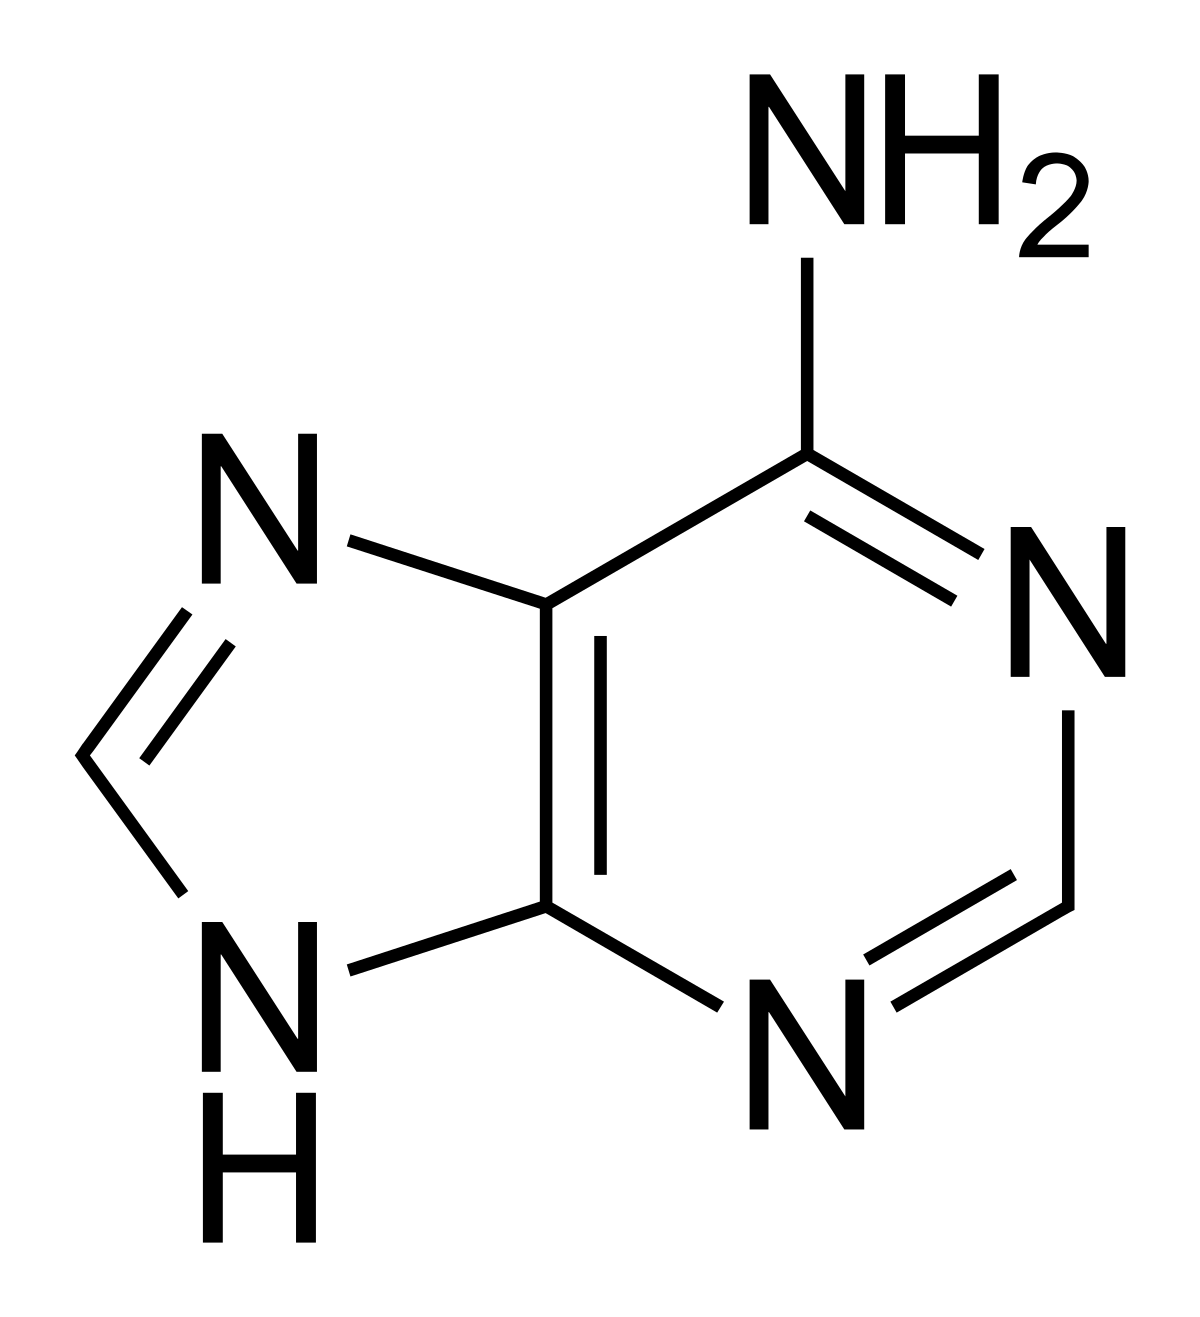 png transparent stock Adenine